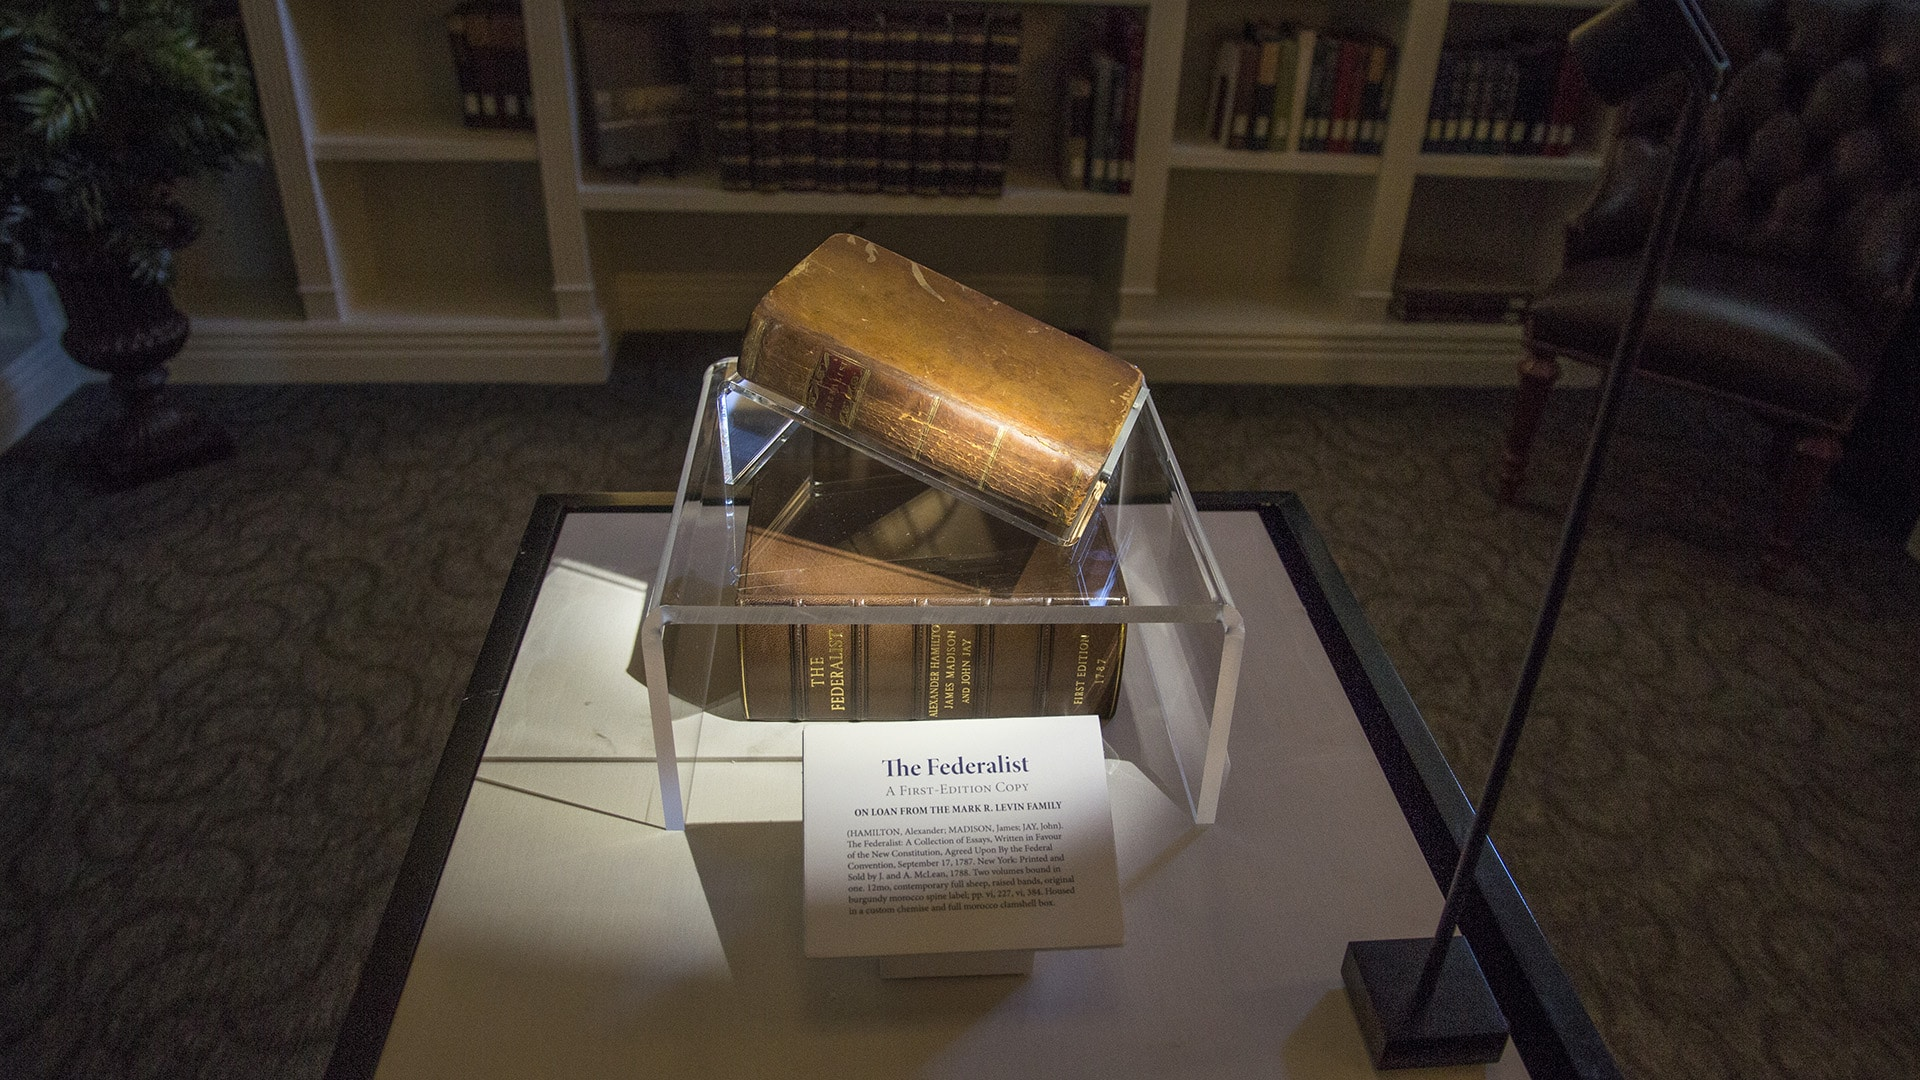 first edition of the federalist at the kirby center